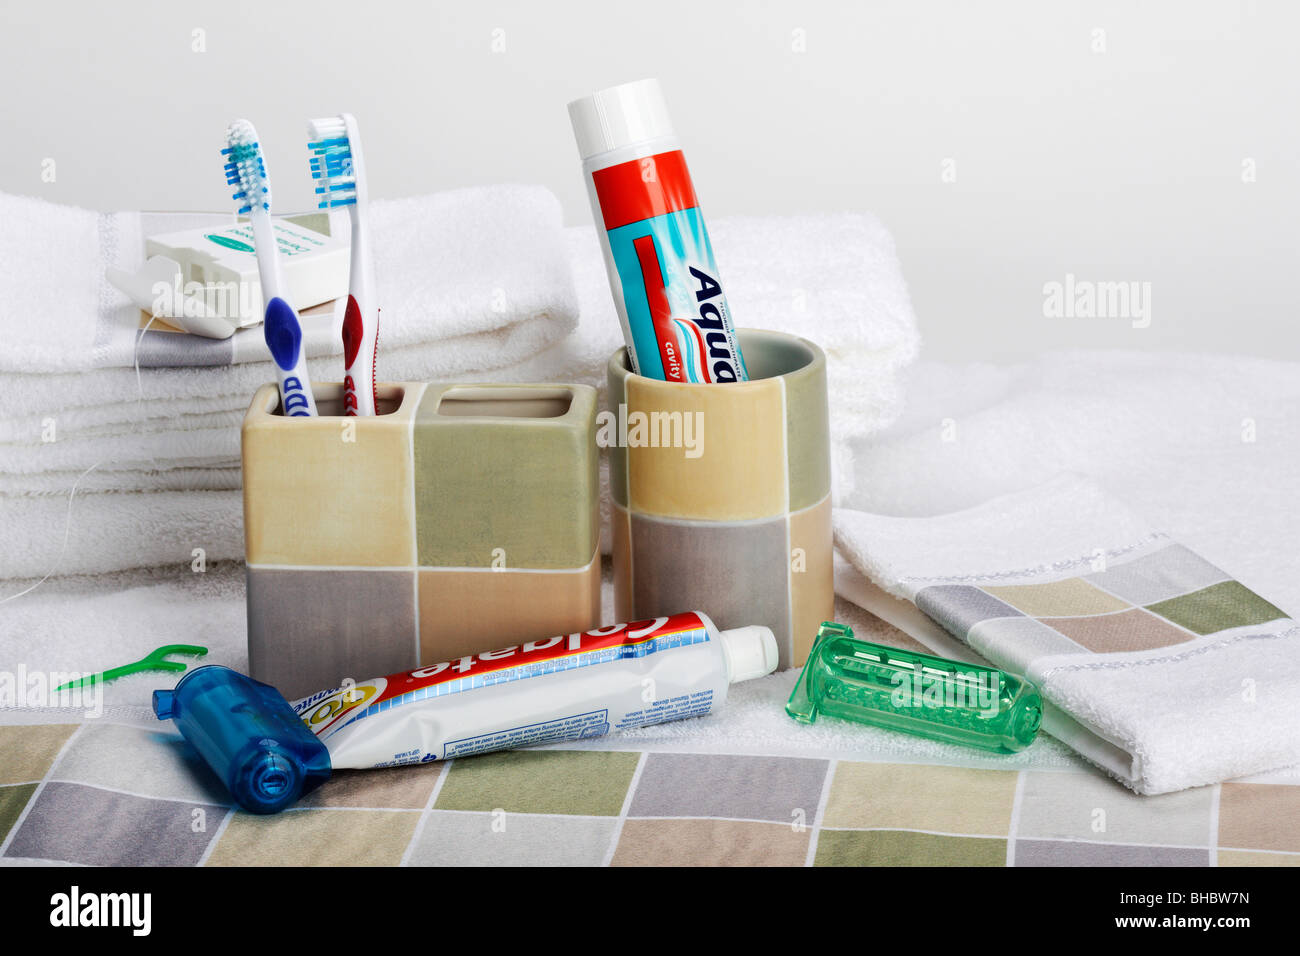 Toothpaste with Squeezer saver and brush holder from above cut out cutout close up closeup studio nobody no people - Stock Image